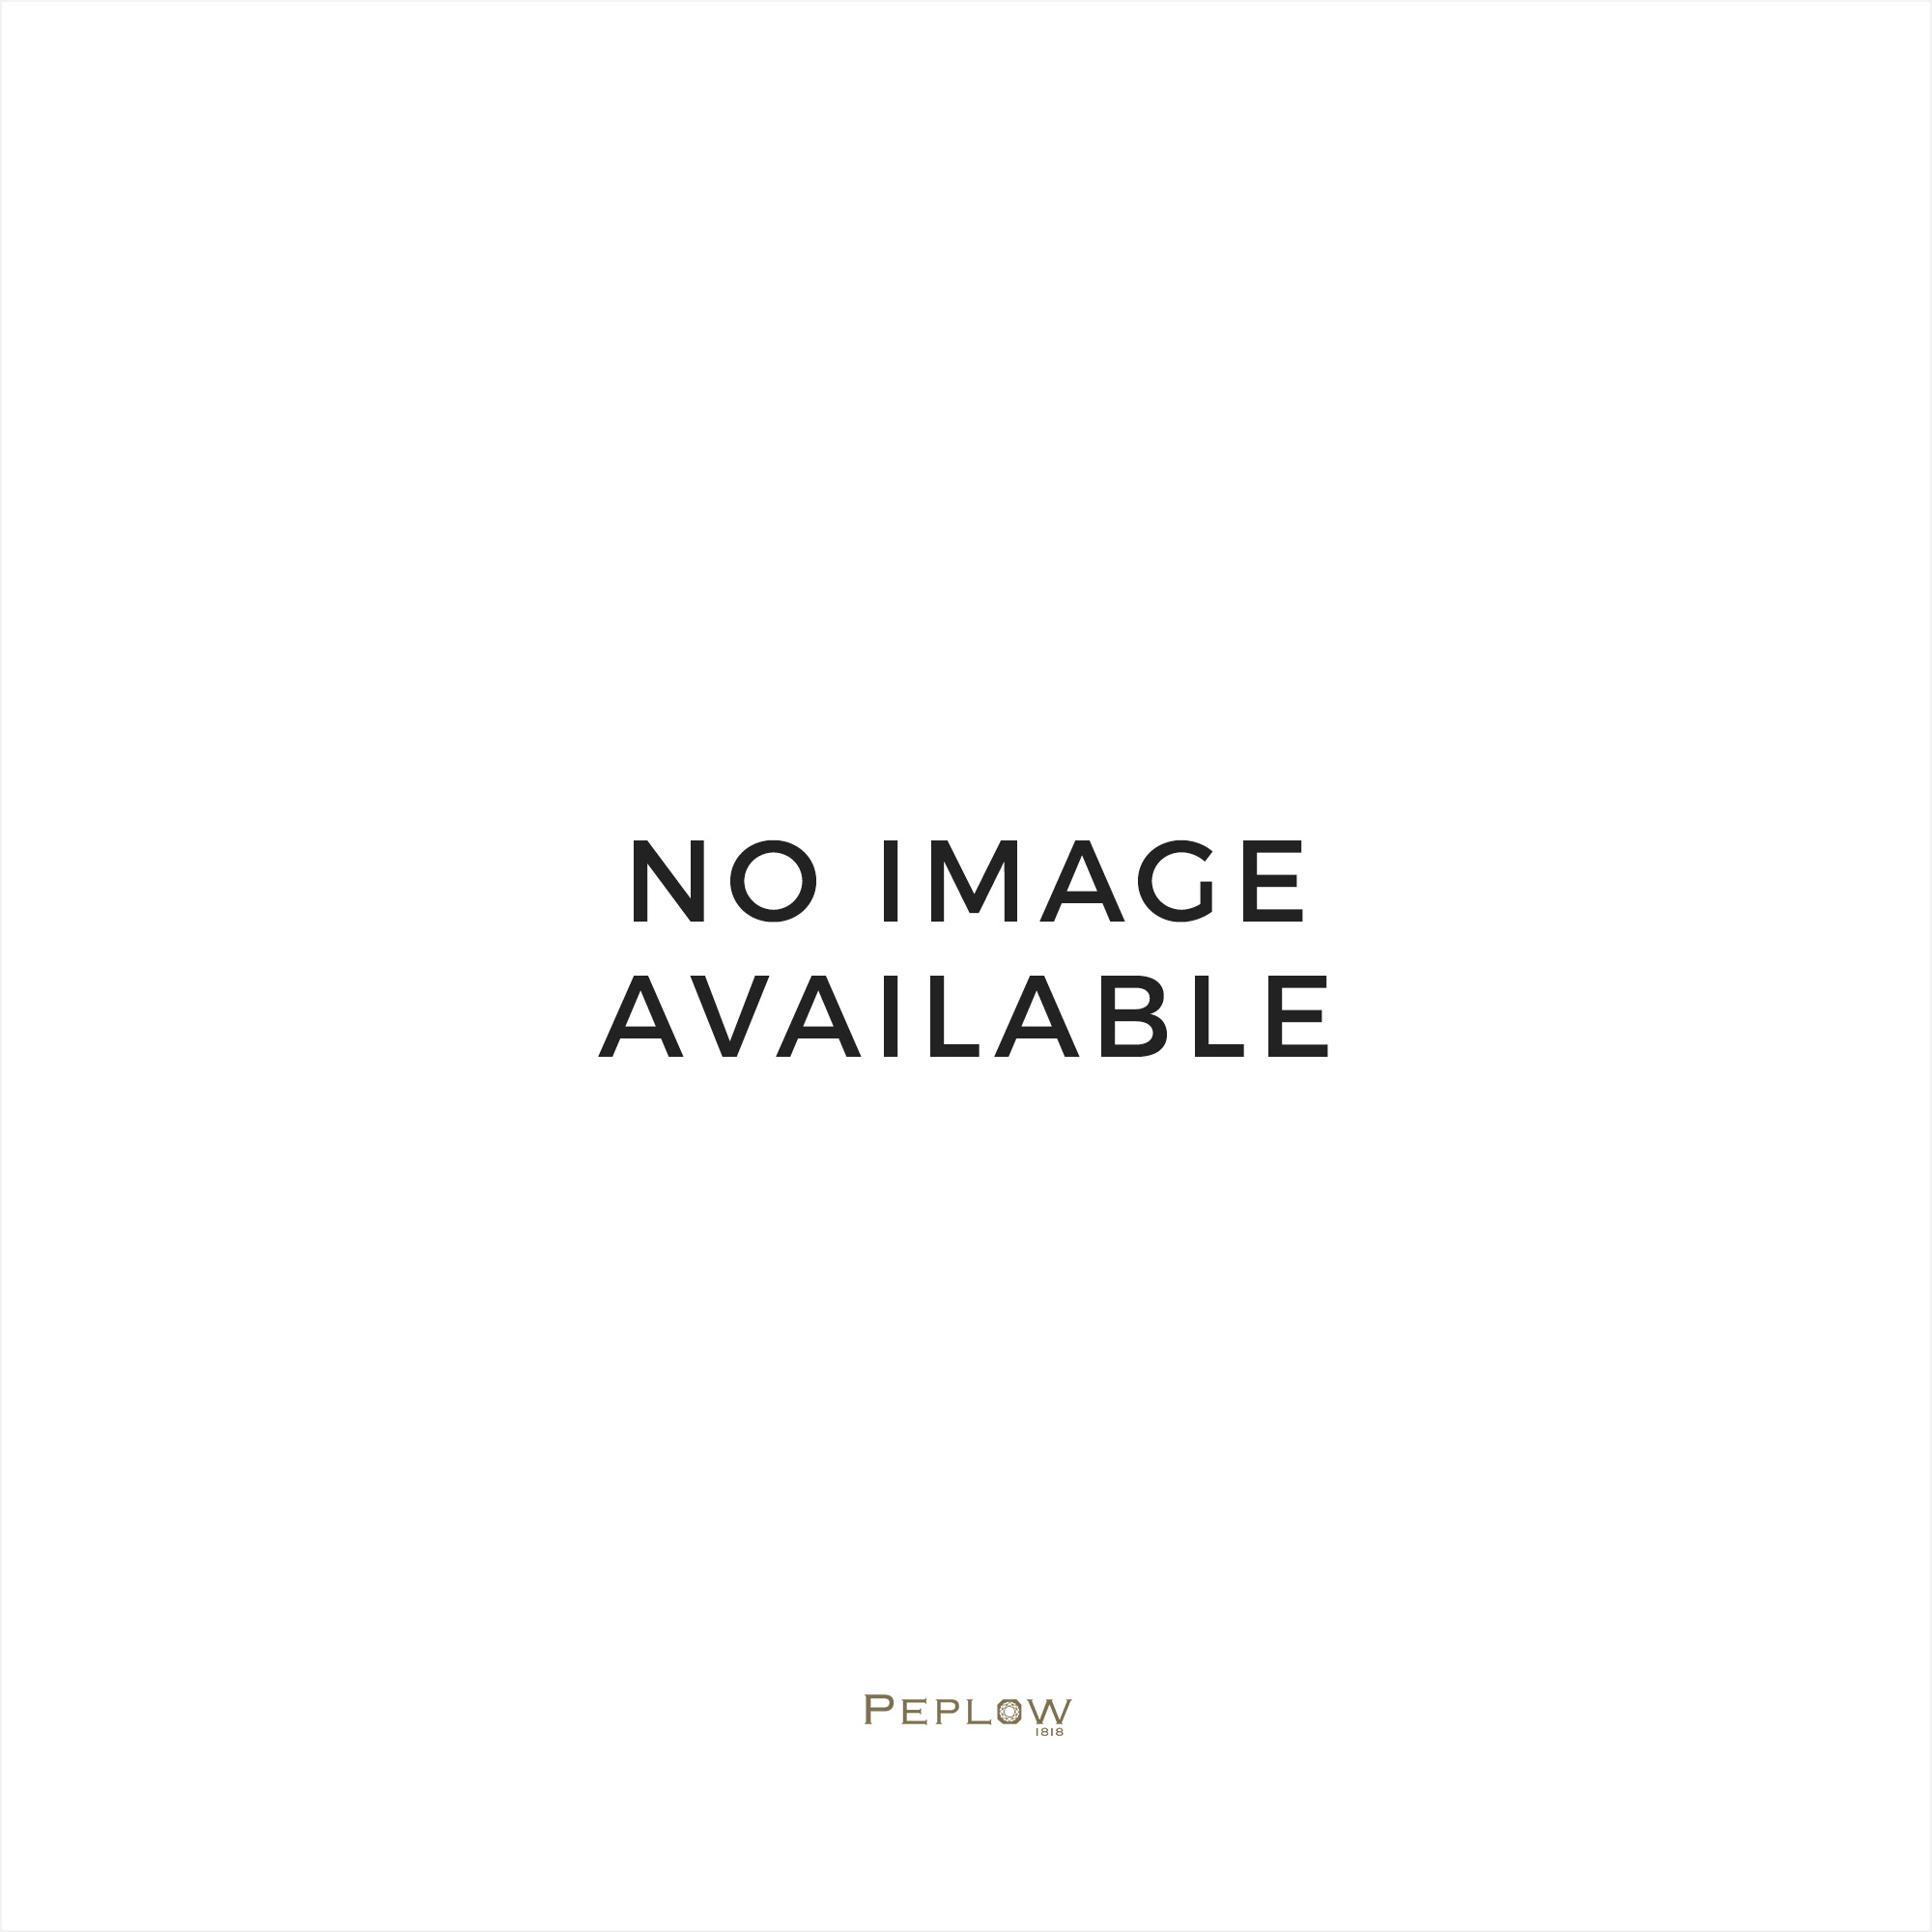 Citizen Watches Citizen Ladies Eco-Drive Silhouette Crystal Watch